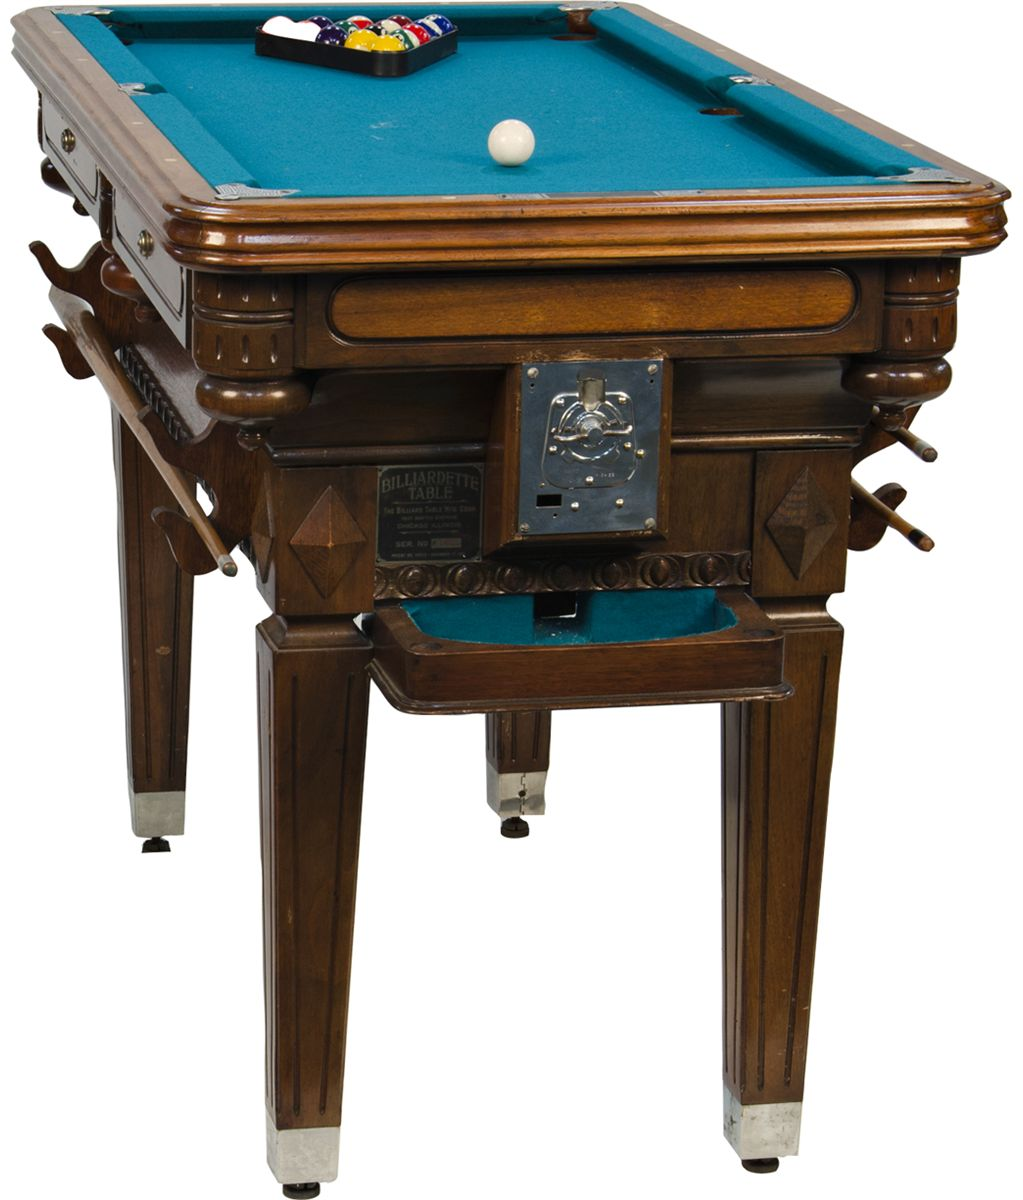 5 Cent Billiardette Table Mini Floor Model Pool Table. Loading Zoom